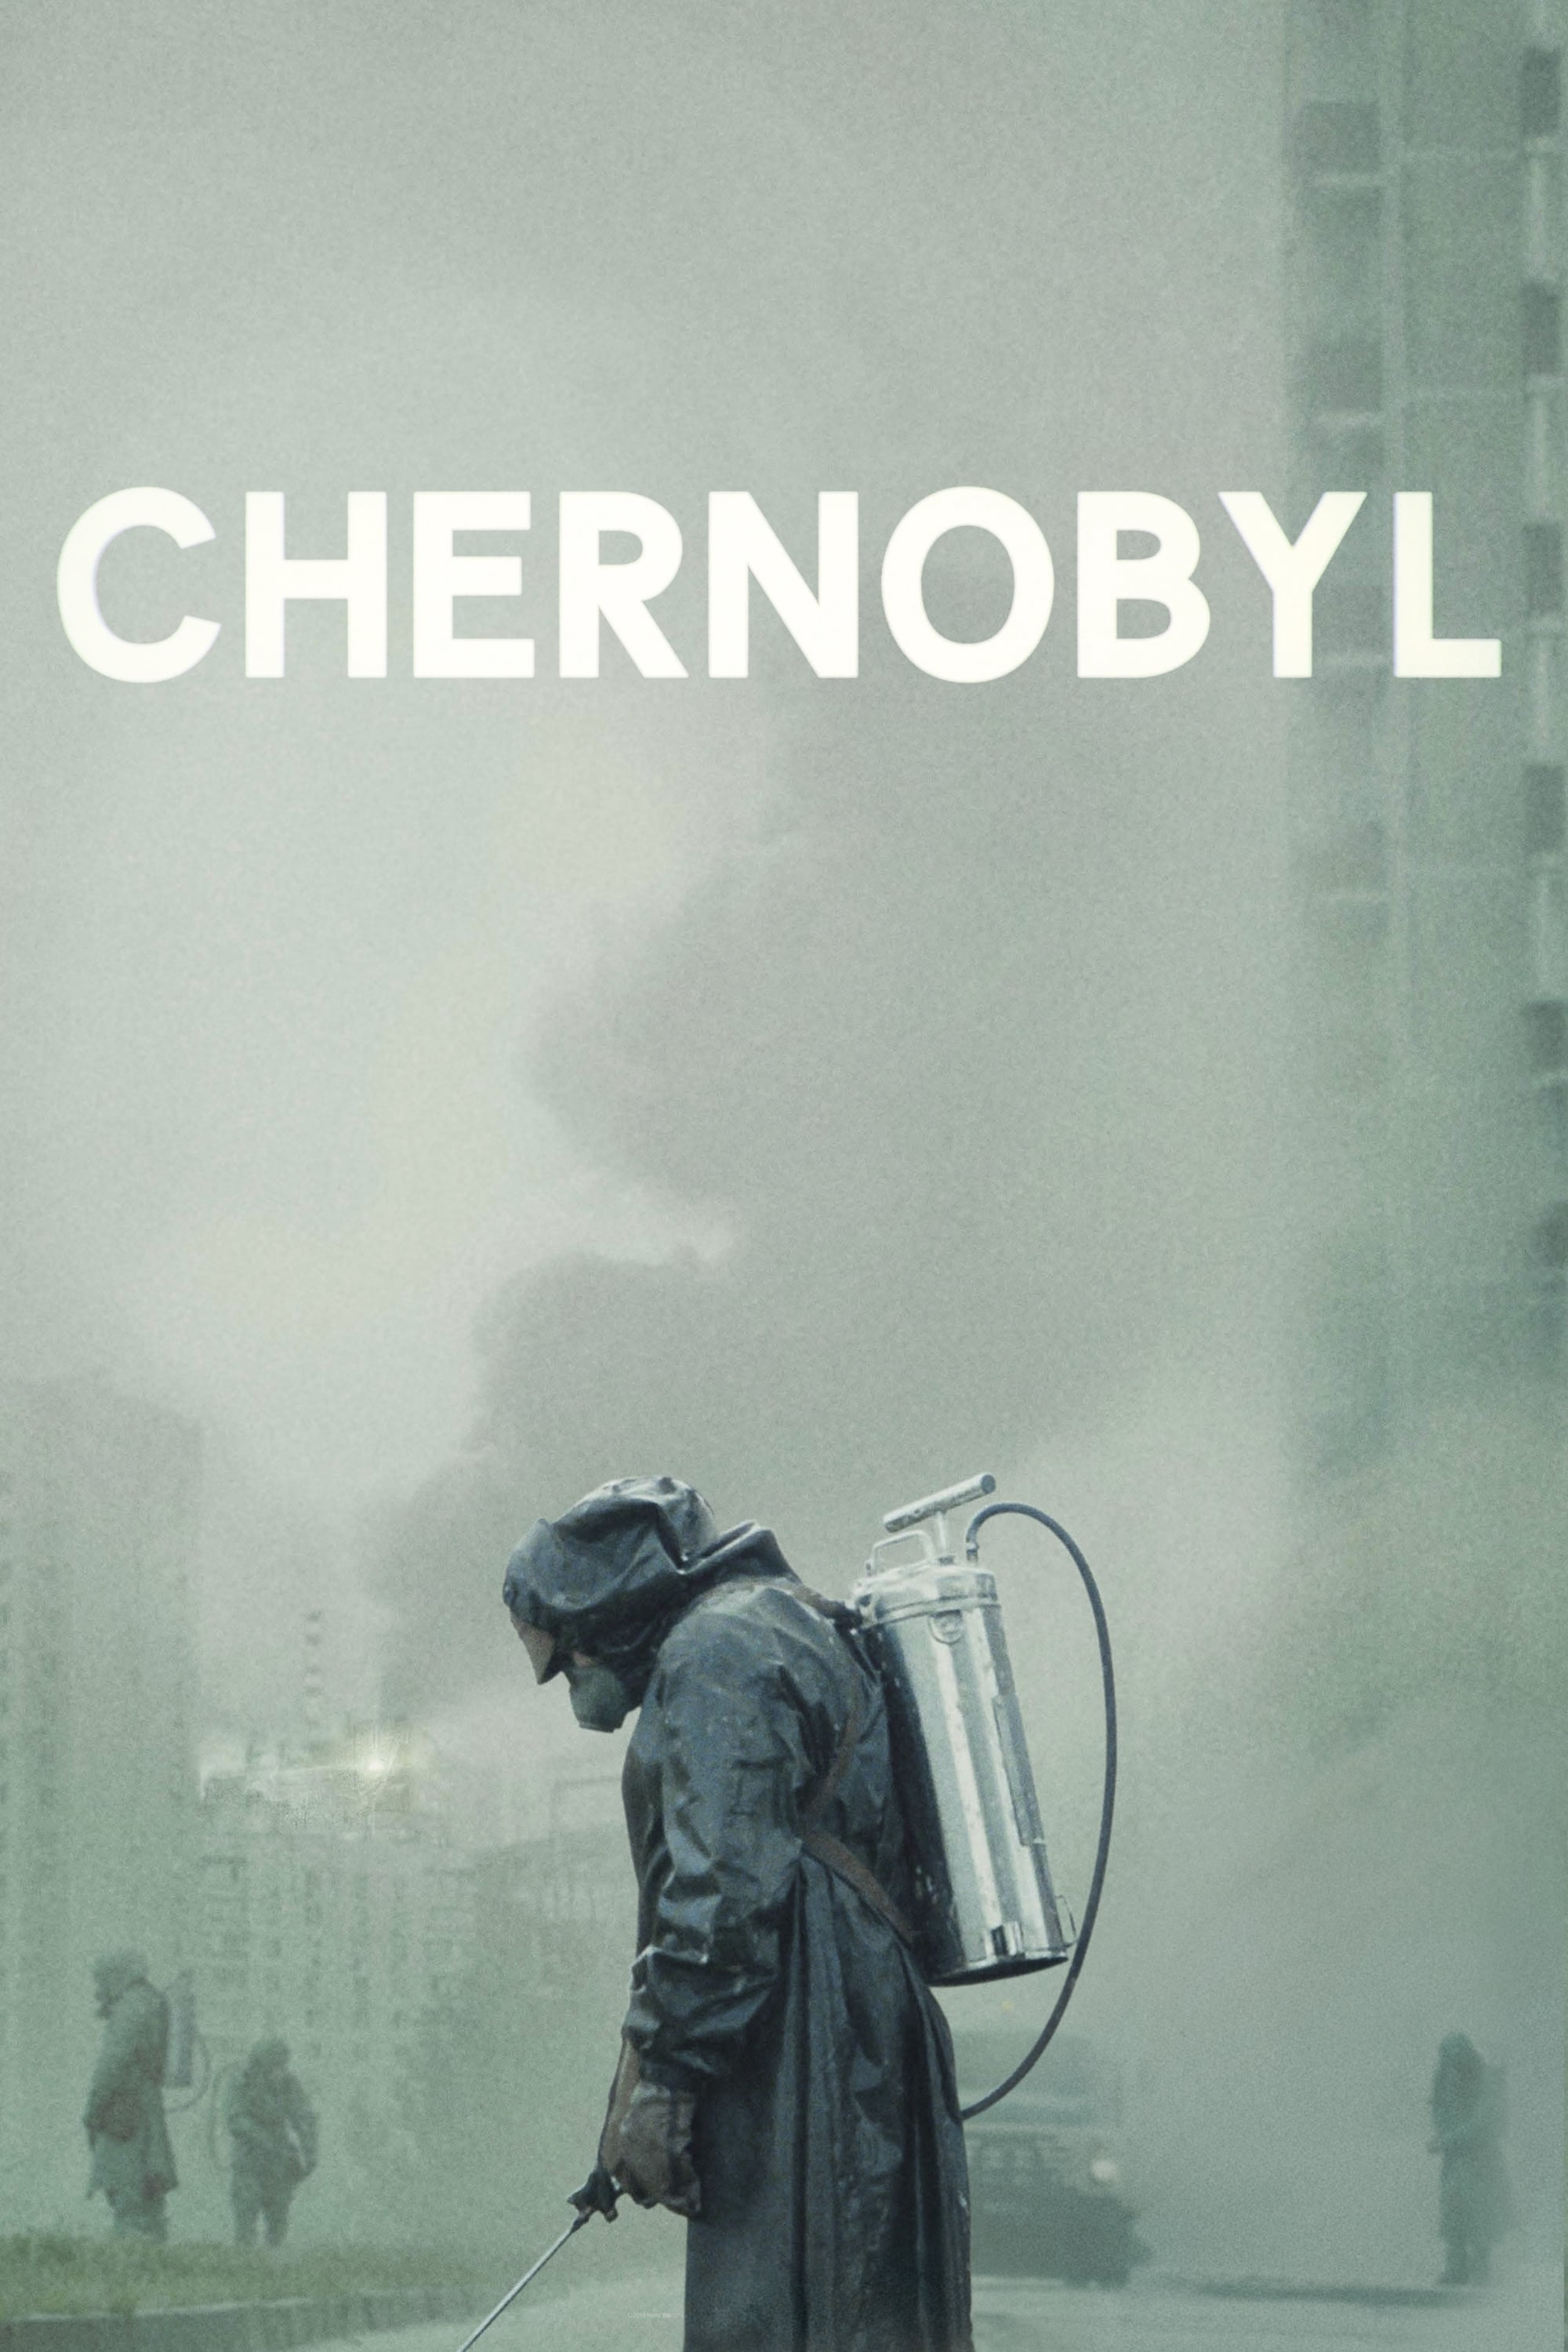 Chernobyl 1ª Temporada (2019) Torrent - WEB-DL 720p e 1080p Dublado / Dual Áudio e Legendado Download